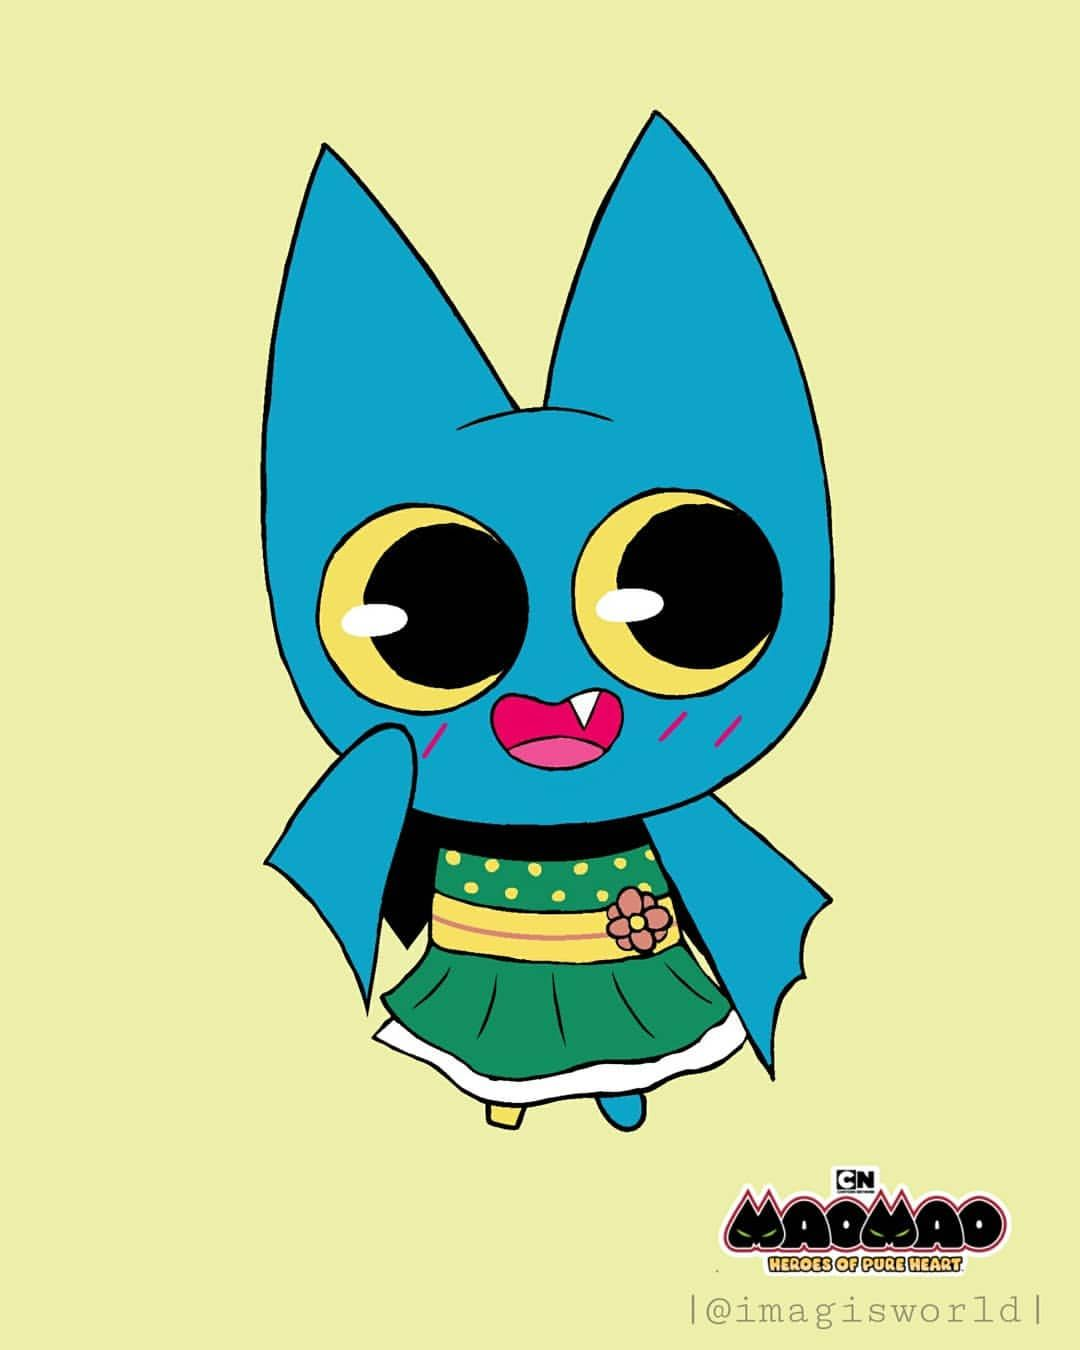 The Adorable Bat Adorabat Wallpaper You Can Download It In My Tumblr Link In Bio Maomaoheroesofpureheart Ad Cartoon Network Nickelodeon Cartoon In some cases you can use cute instead an. the adorable bat adorabat wallpaper you